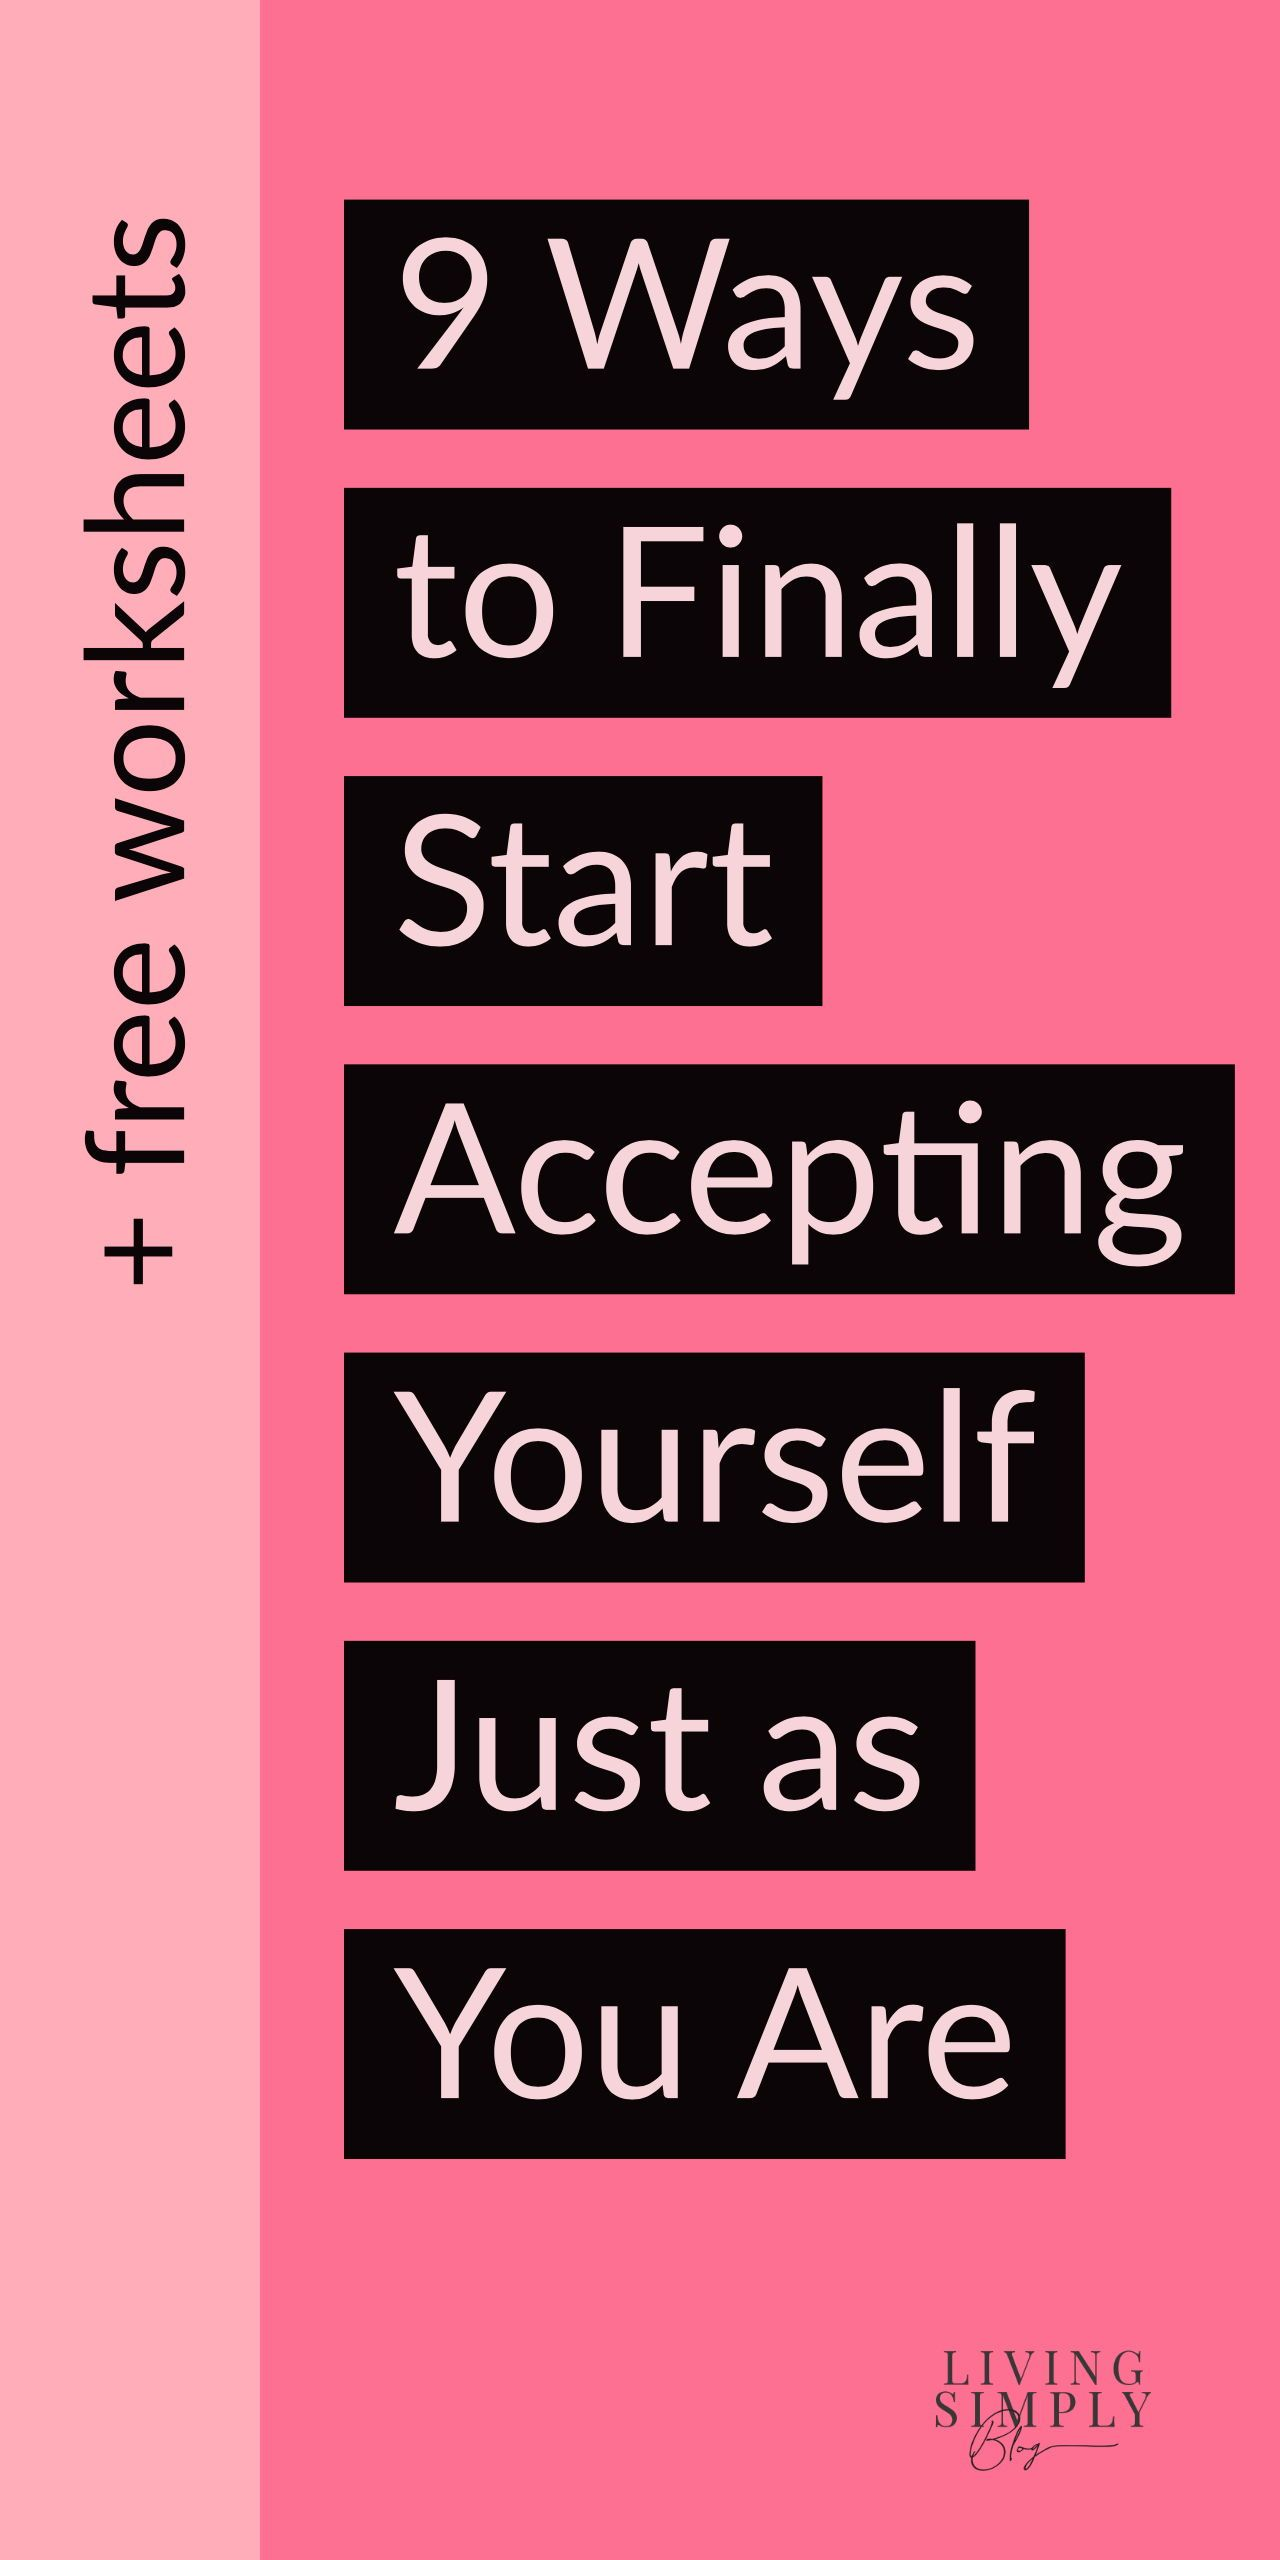 Self Acceptance How Compassion Leads To Contentment And Happiness